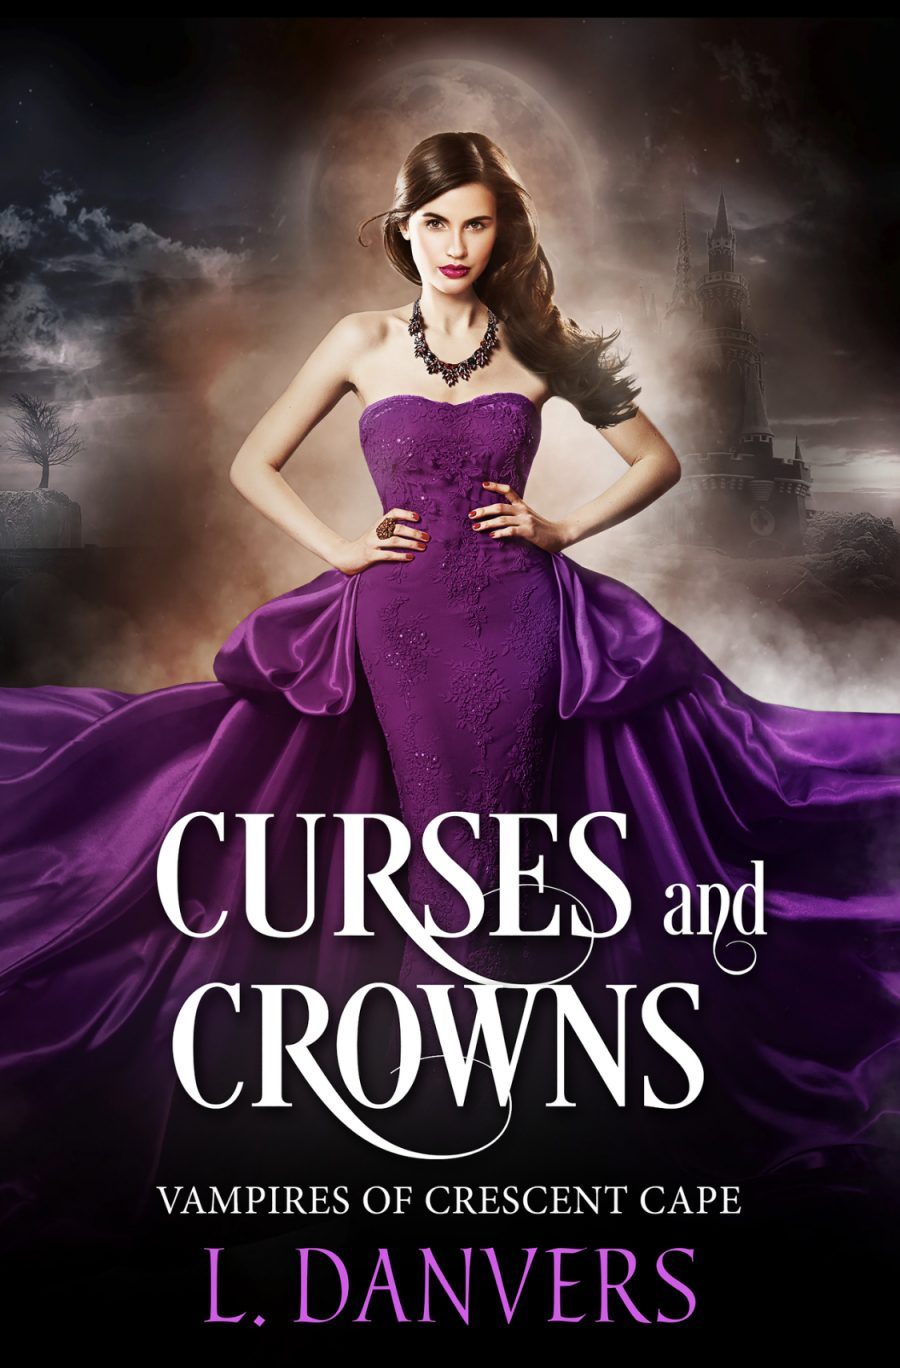 Curses and Crowns by L. Danvers - A Book Review #BookReview #PNR #3Stars #EmotionallyFast #KindleUnlimited #KU #Vampires #Werewolf